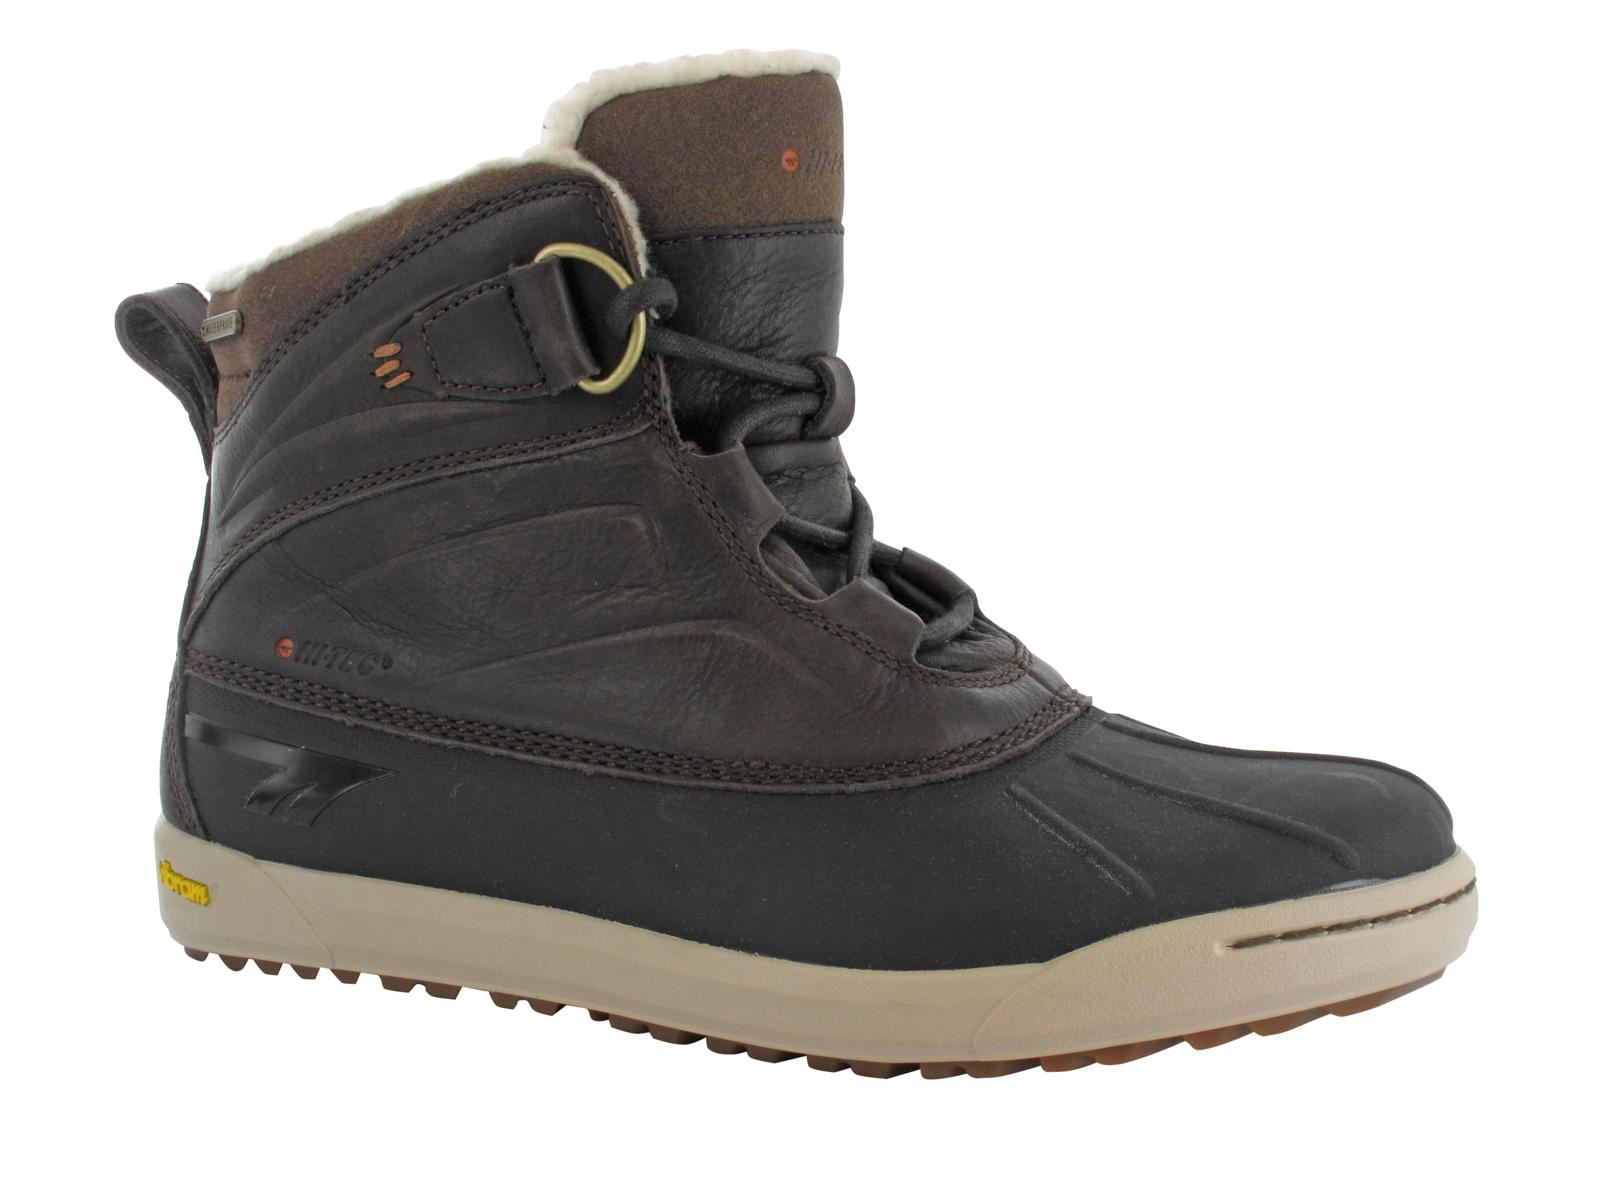 Mens Waterproof Winter Boots - Cr Boot